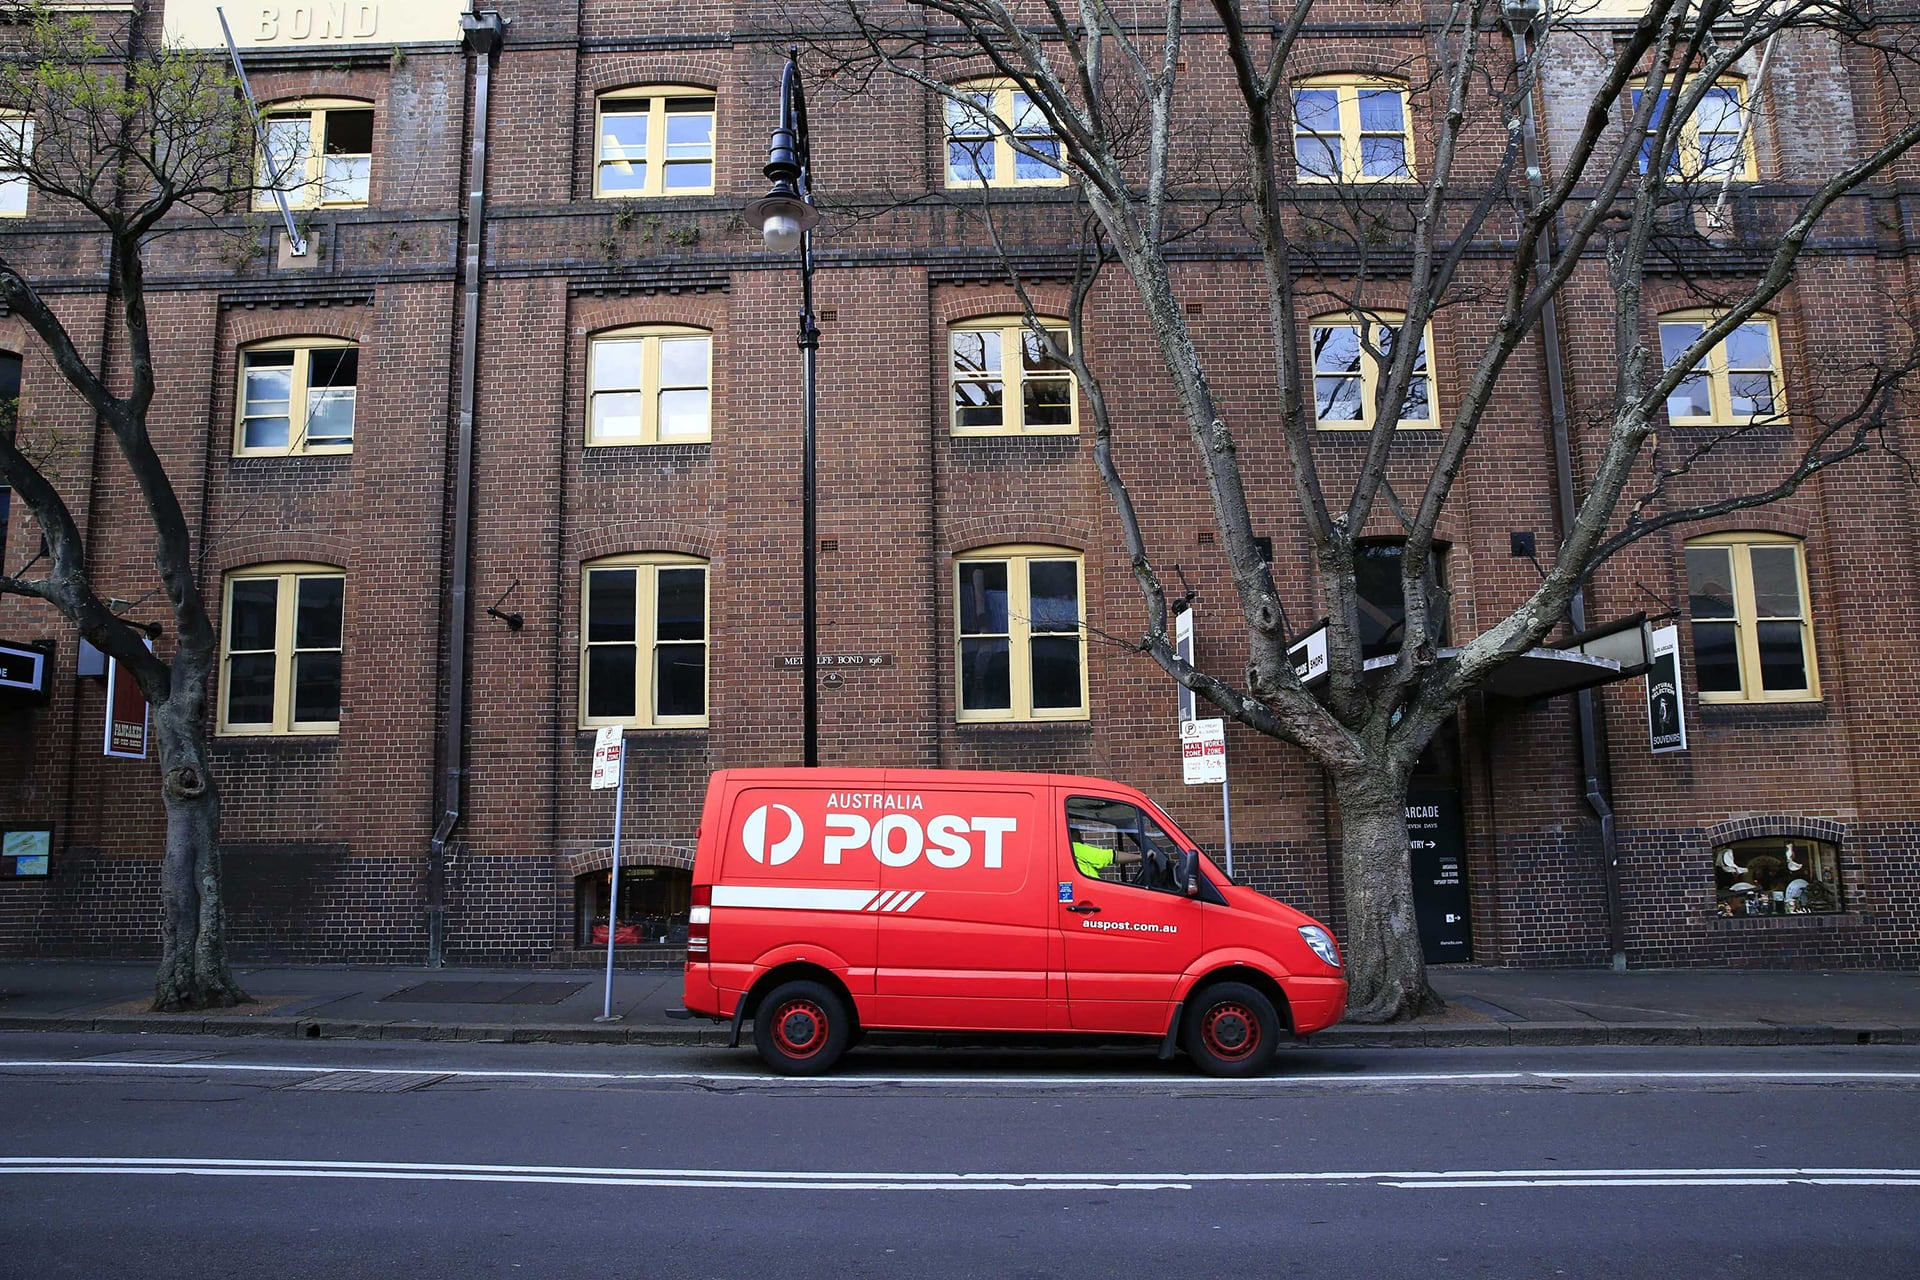 direct mail with Autralian Postal van outside building